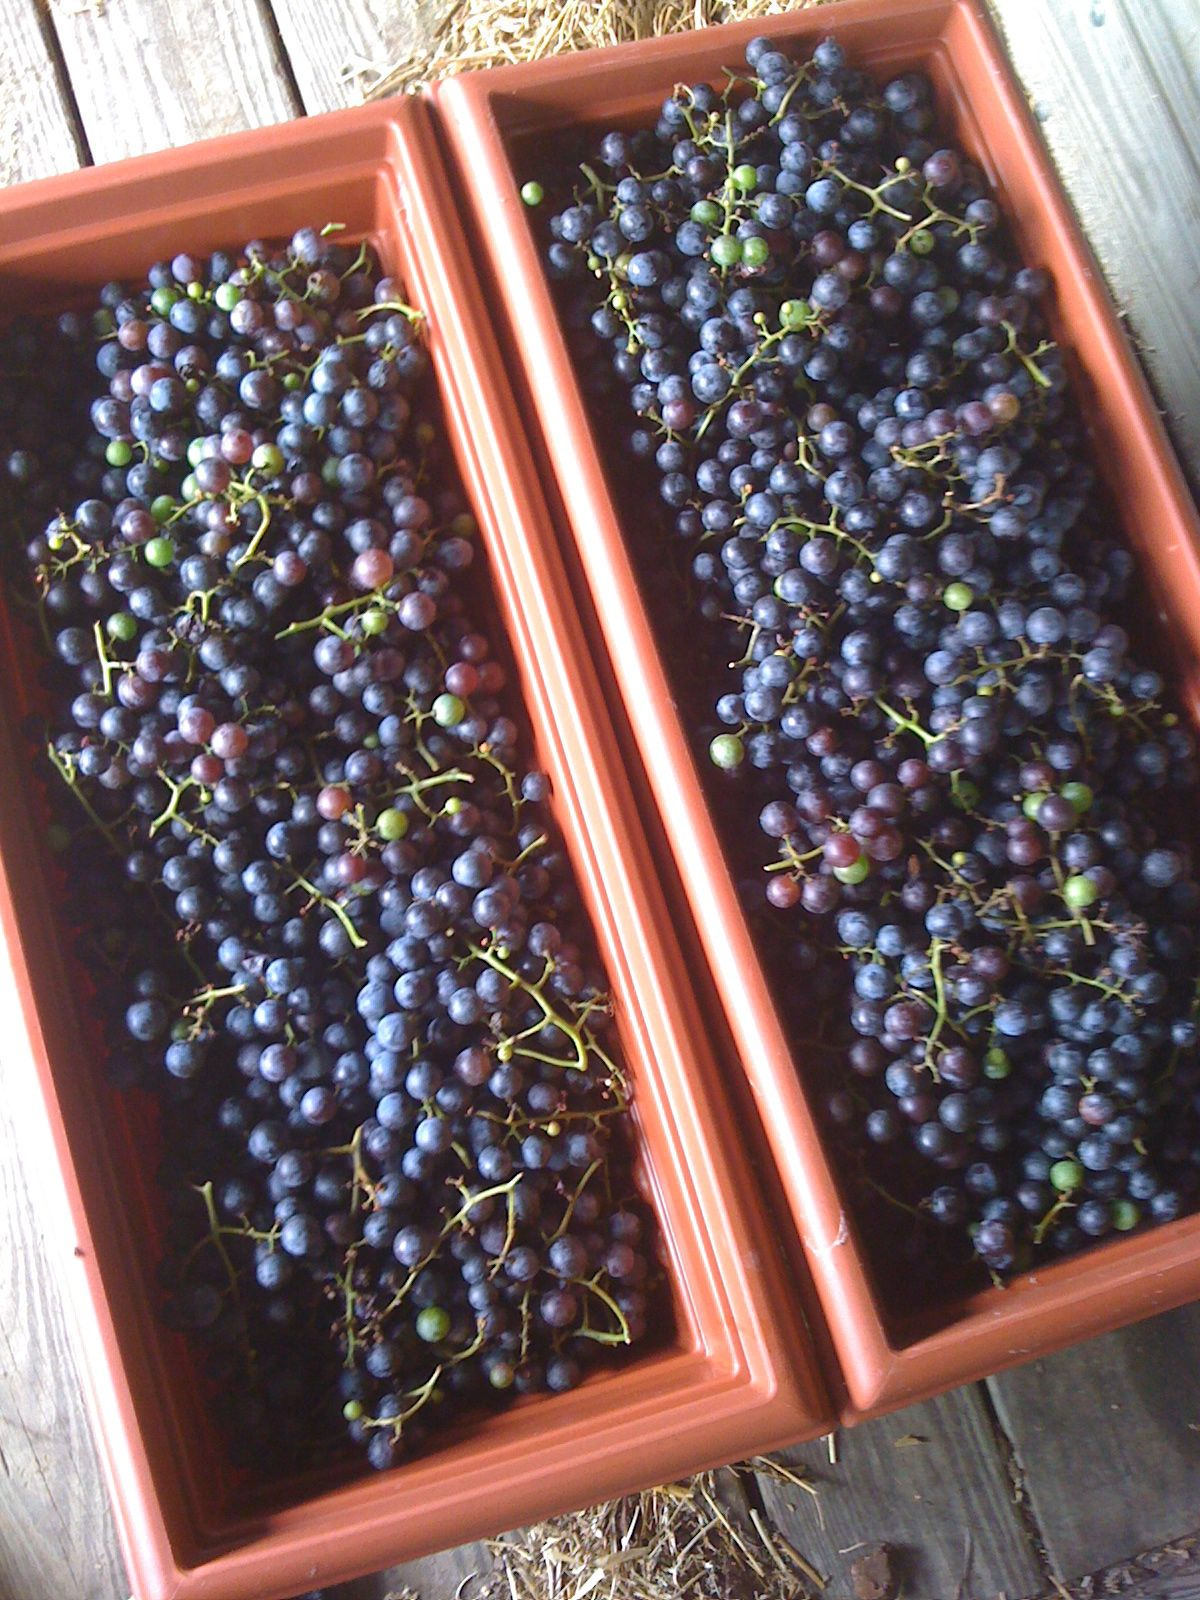 65 lbs. of concord grapes, ready for a trip on the Xtracycle